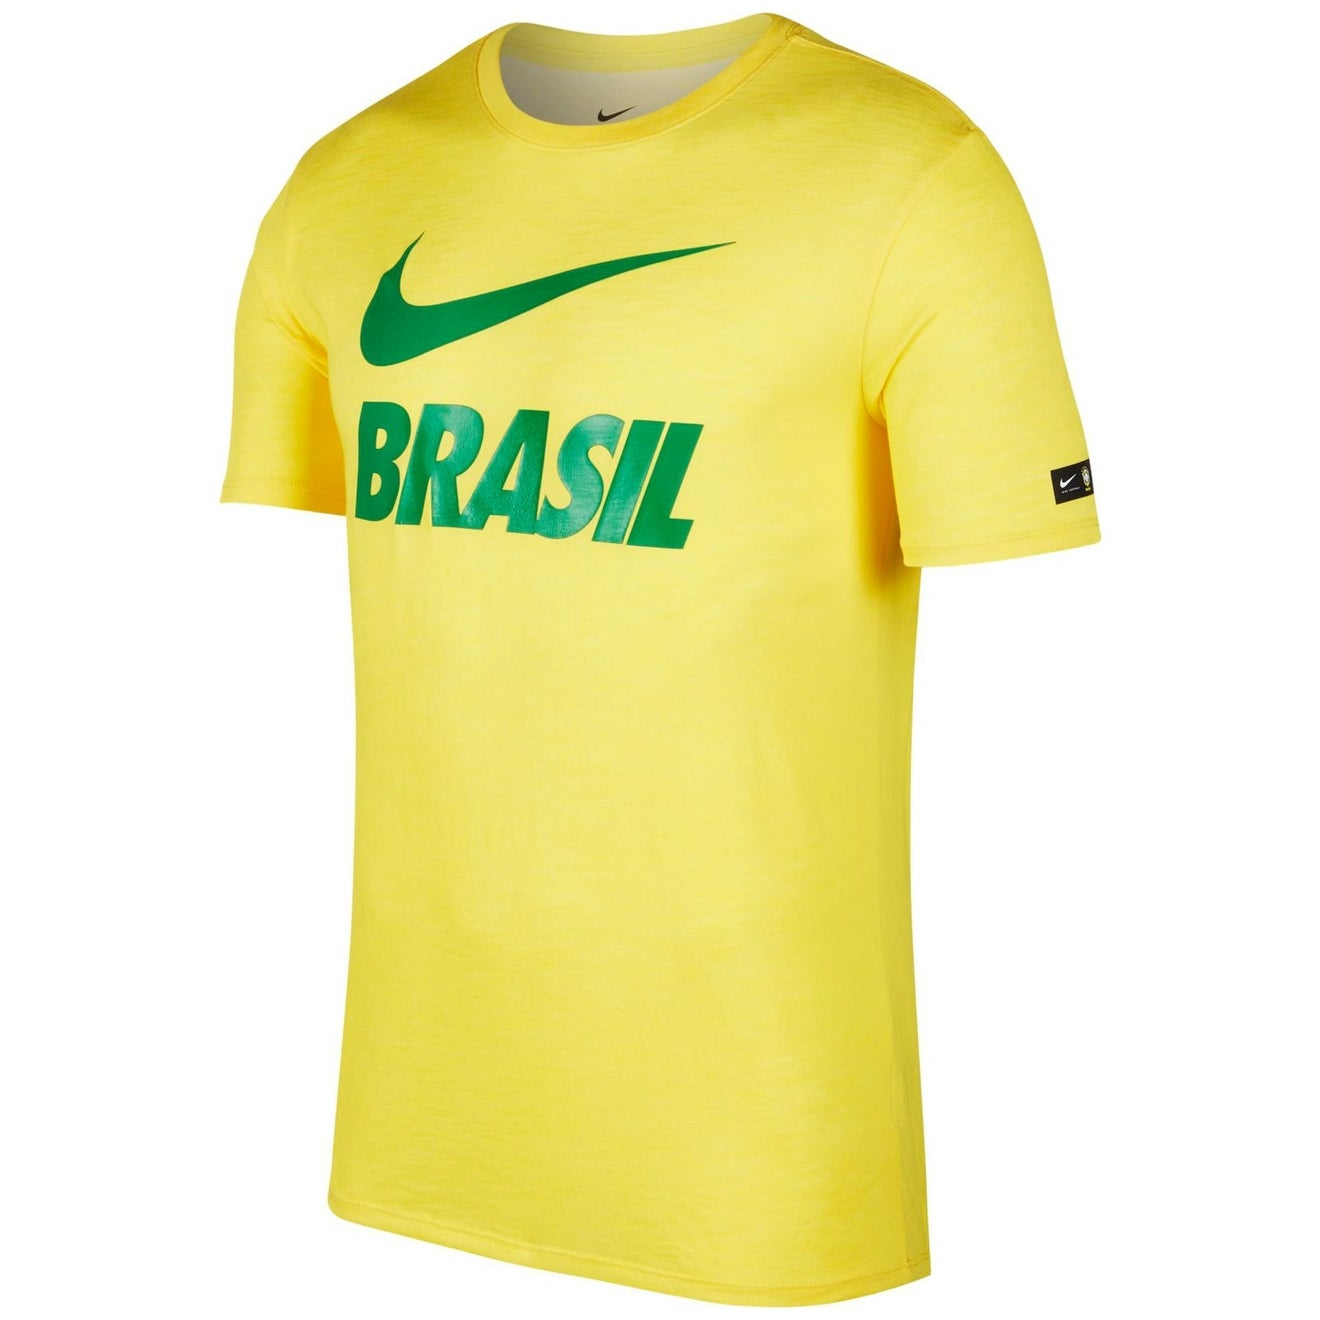 fbae7757 Shop Nike Yellow Green Mens 2XL Brasil Graphic Crewneck Tee T-Shirt - Free  Shipping On Orders Over $45 - Overstock - 28111431